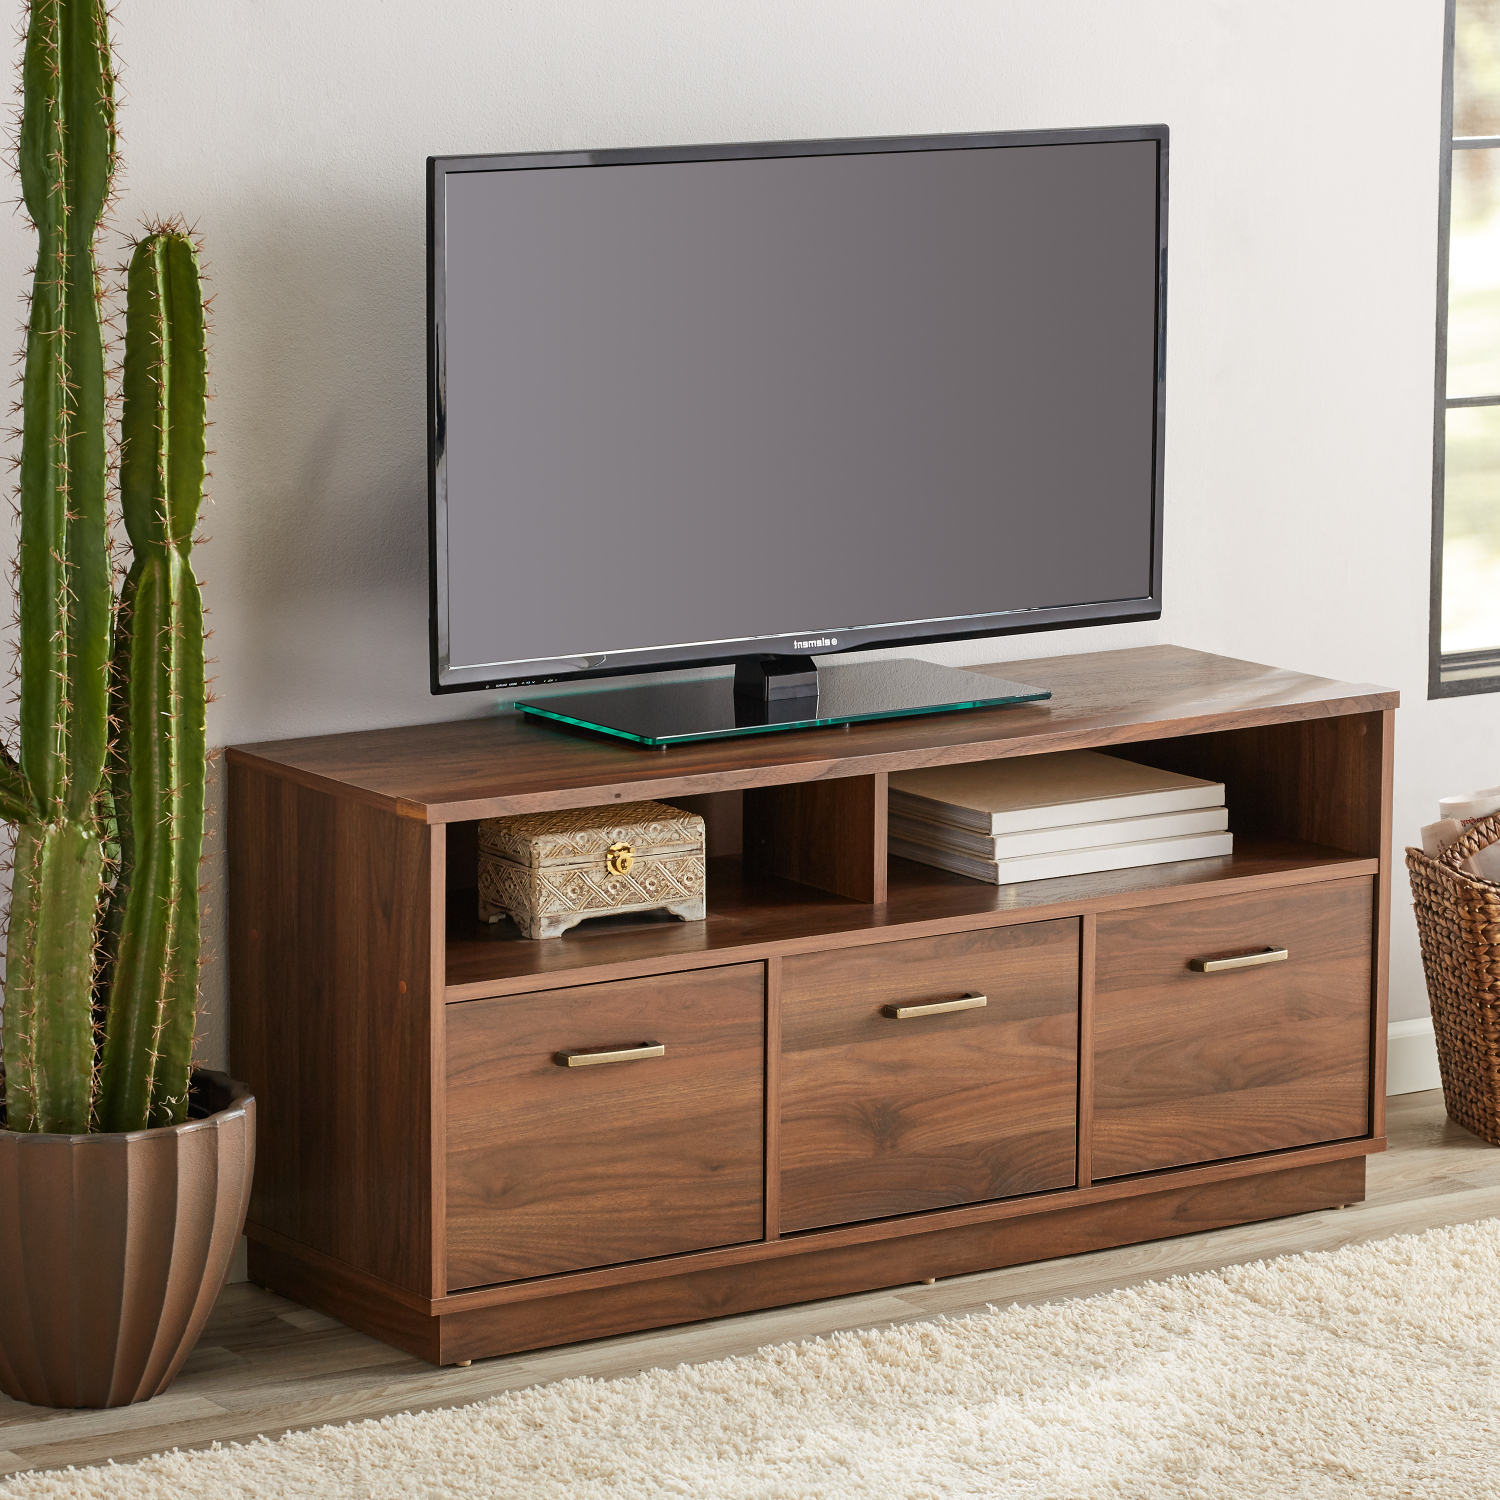 """Canyon Walnut 3 Door Tv Stand Console For Tvs Up To 50 Intended For Popular Lansing Tv Stands For Tvs Up To 50"""" (View 5 of 25)"""